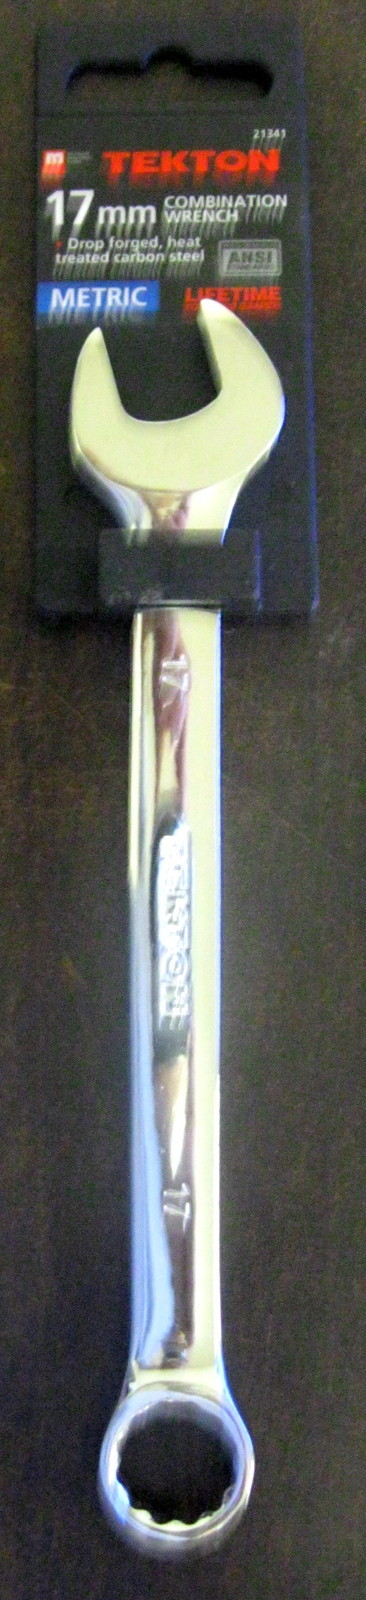 New MIT 17mm Combination Wrench #21341